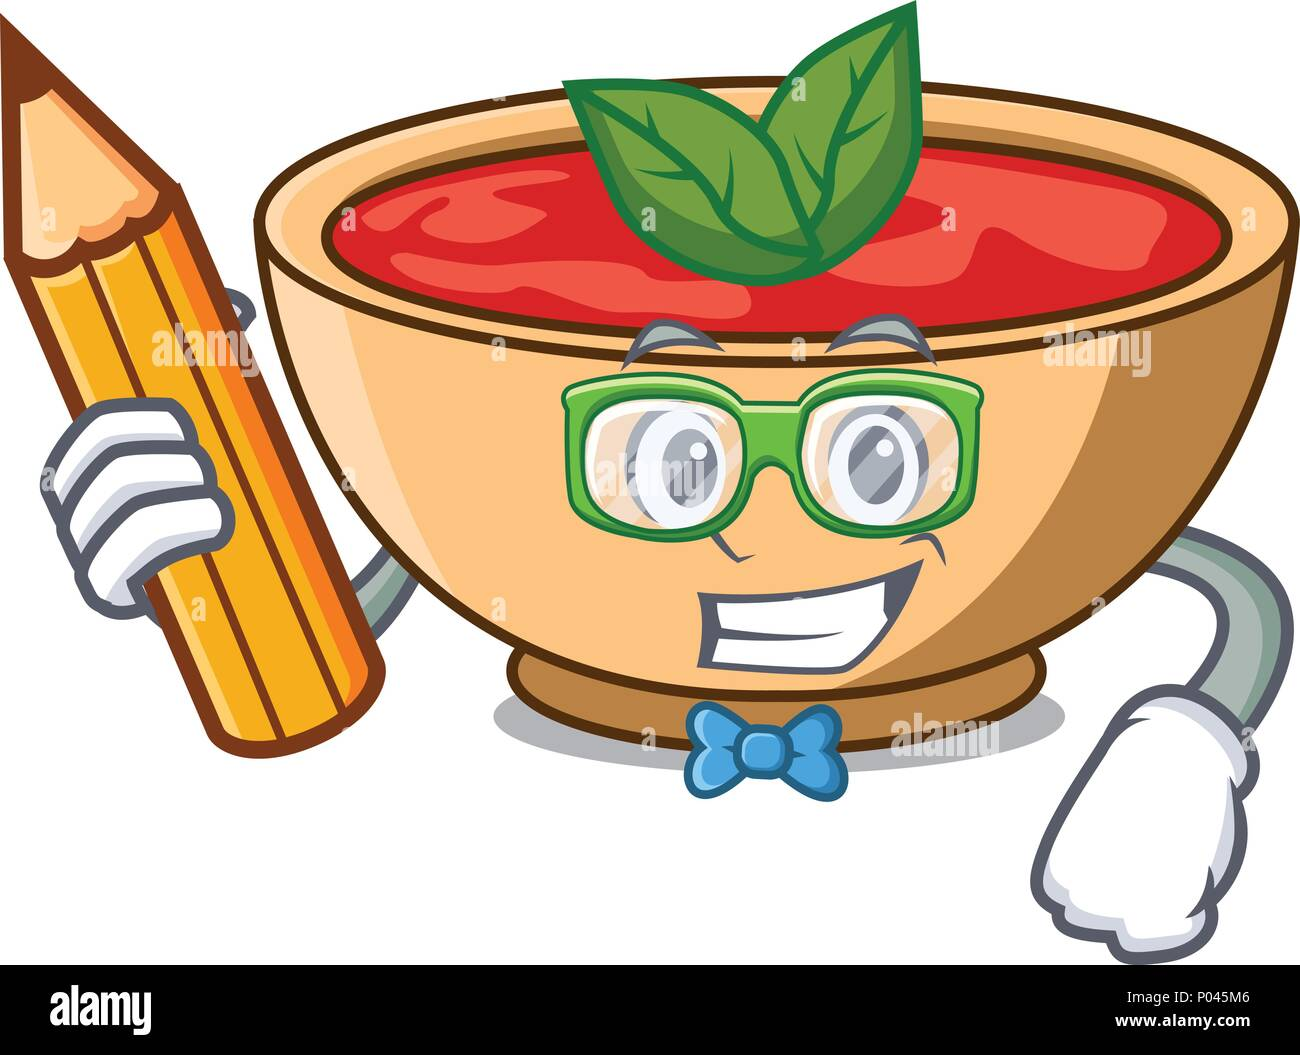 Student tomato soup character cartoon - Stock Vector